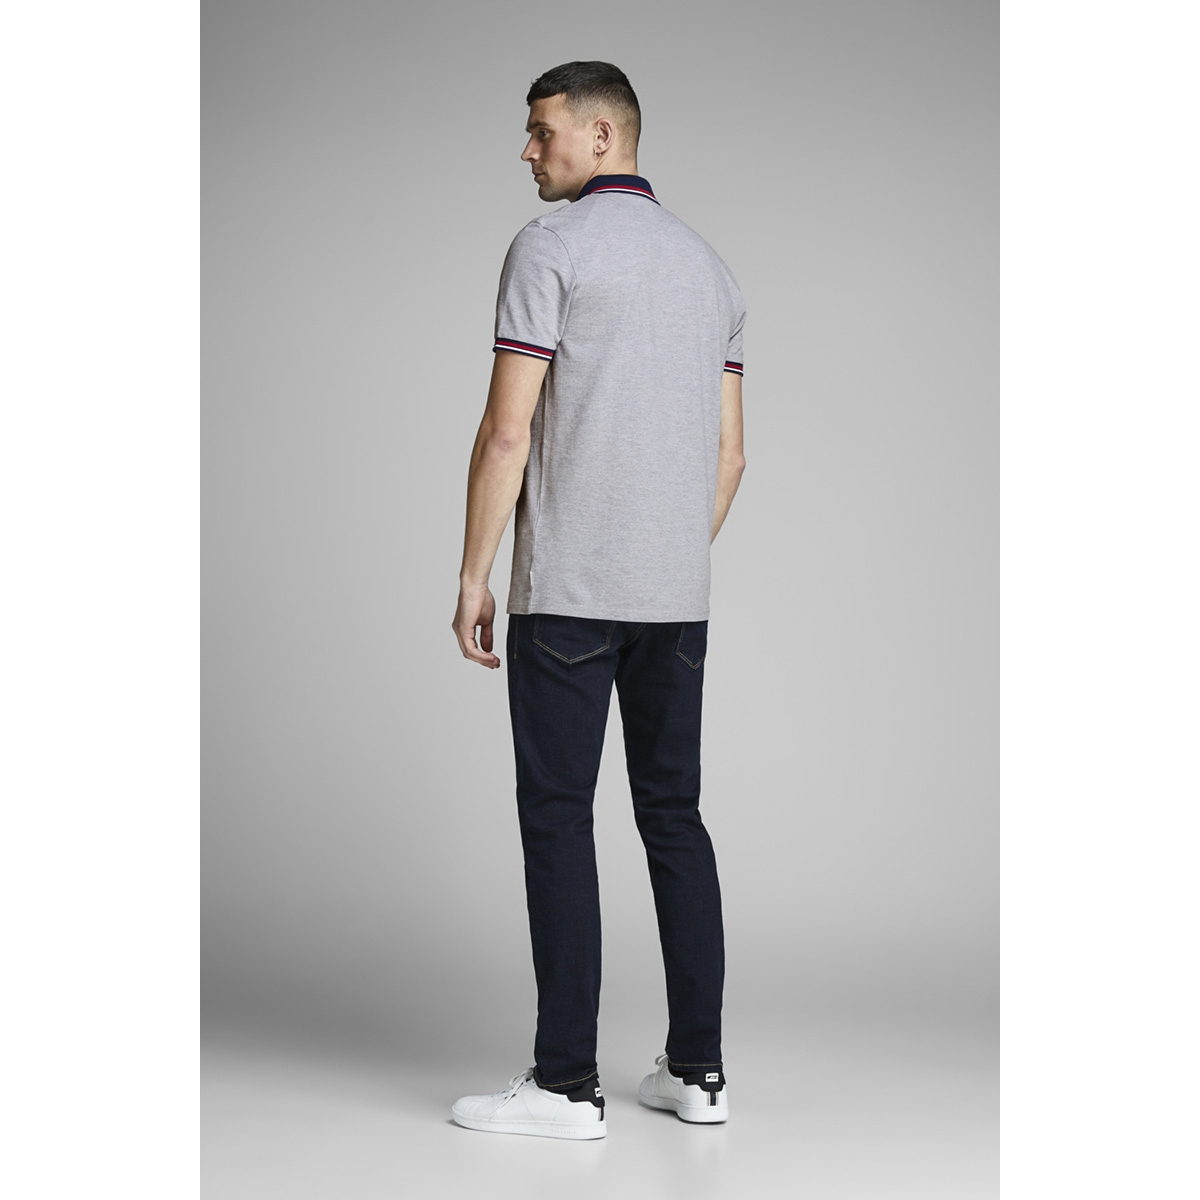 jcochallenge polo ss noos 12145116 jack & jones polo light grey melange/reg